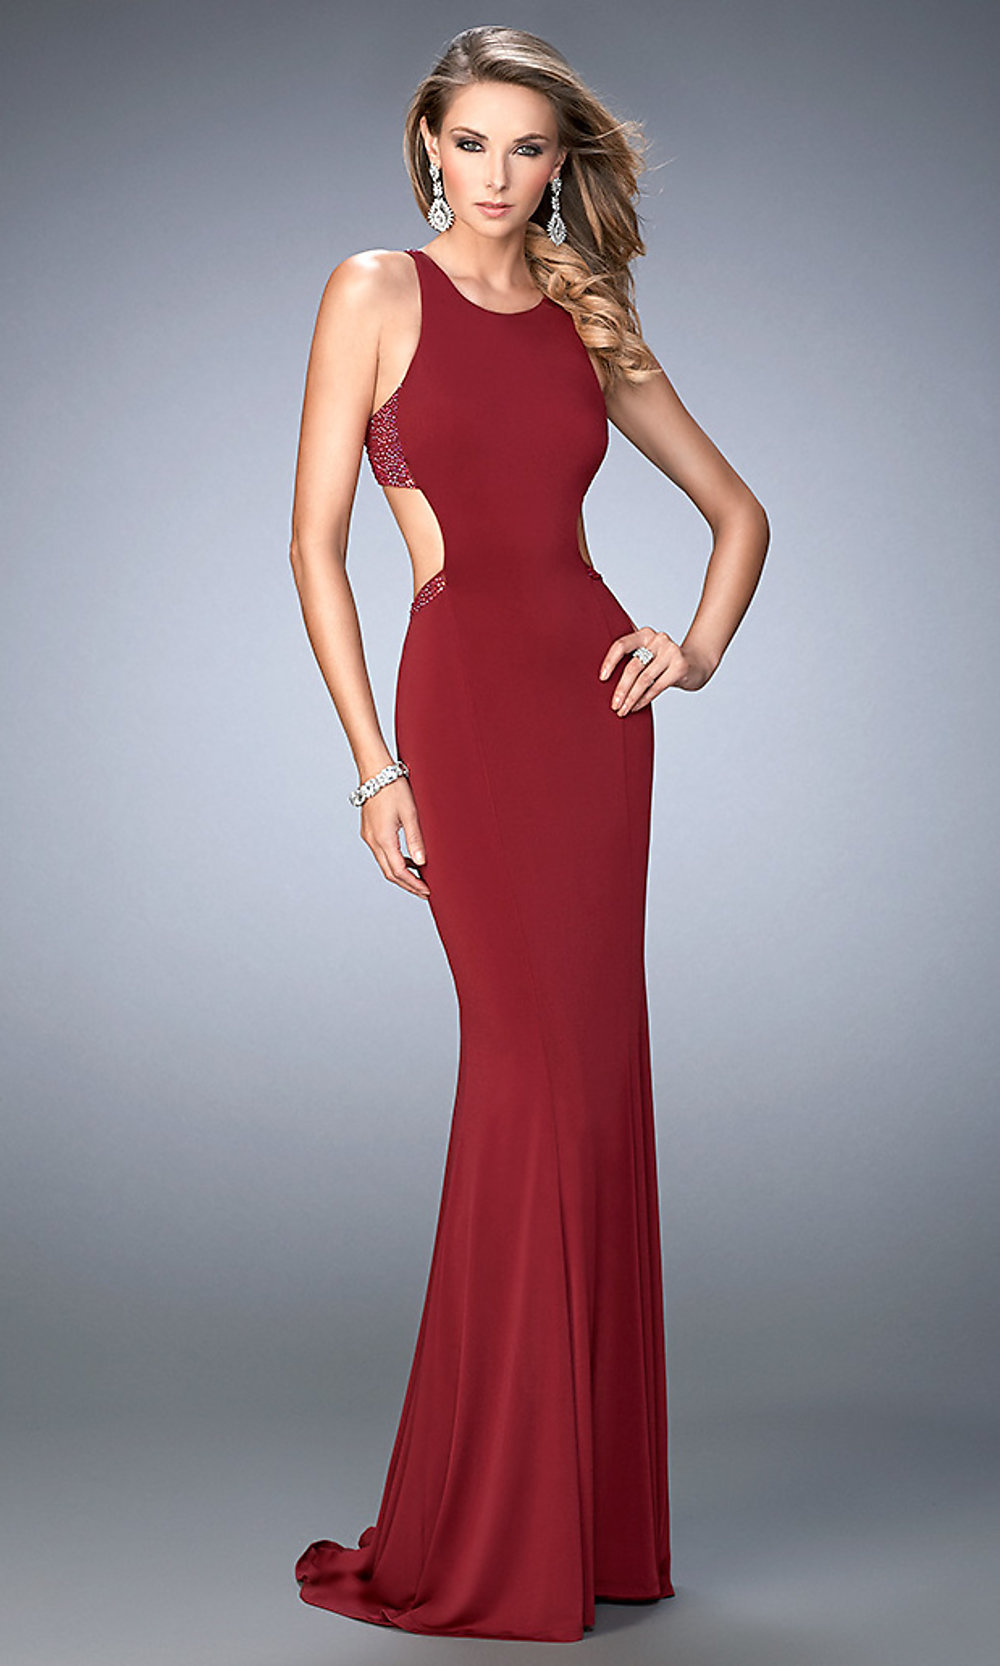 Open-Back Sleeveless Long La-Femme Dress -PromGirl